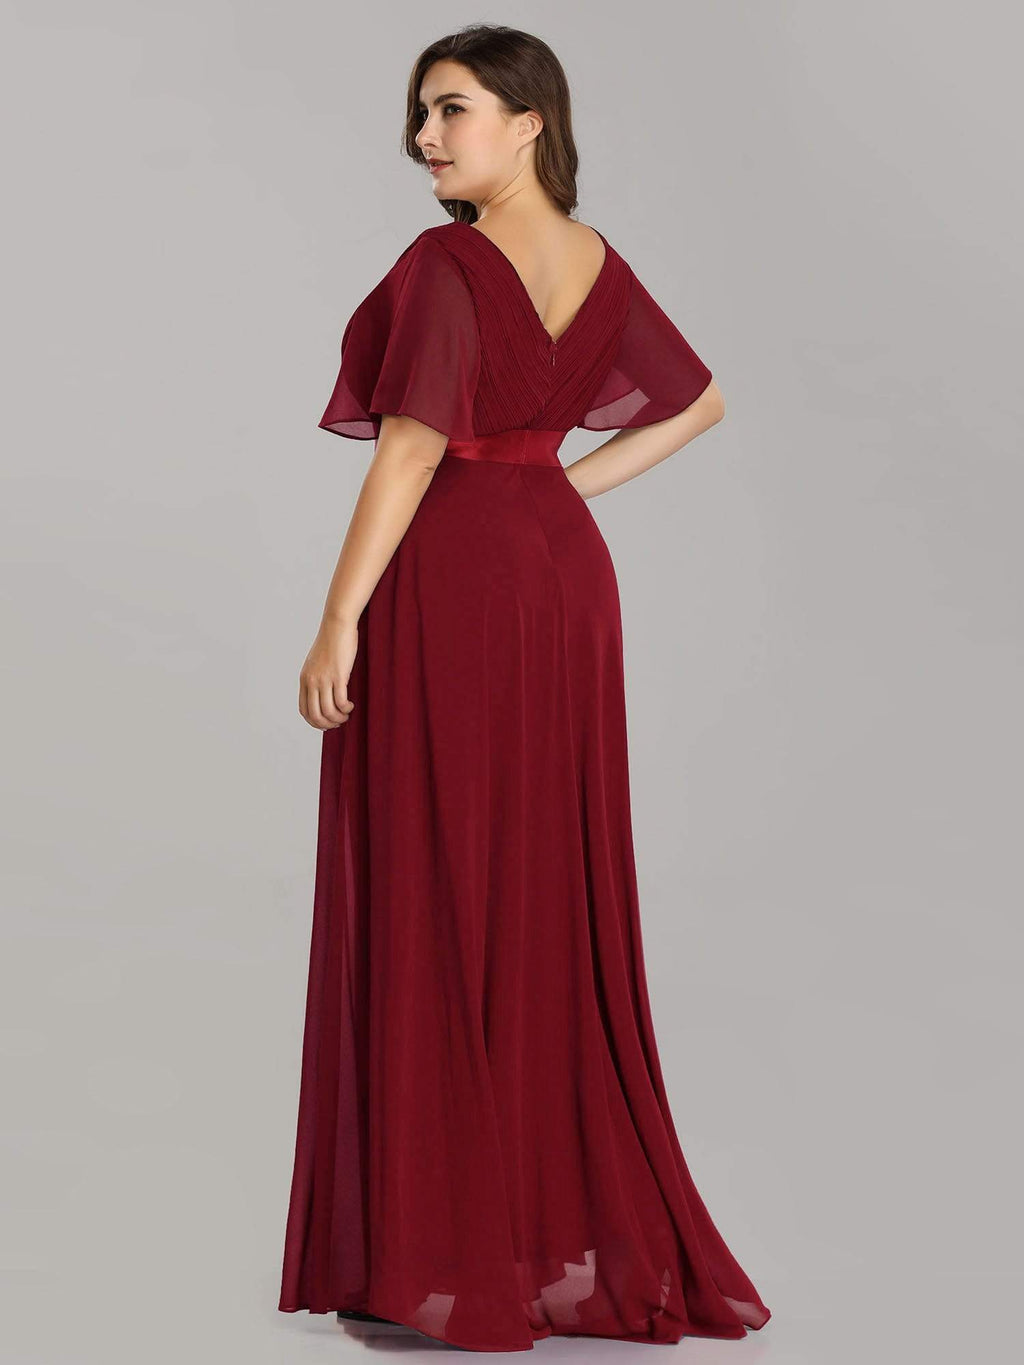 Billie flutter sleeve chiffon ball dress in burgundy red Express NZ wide!